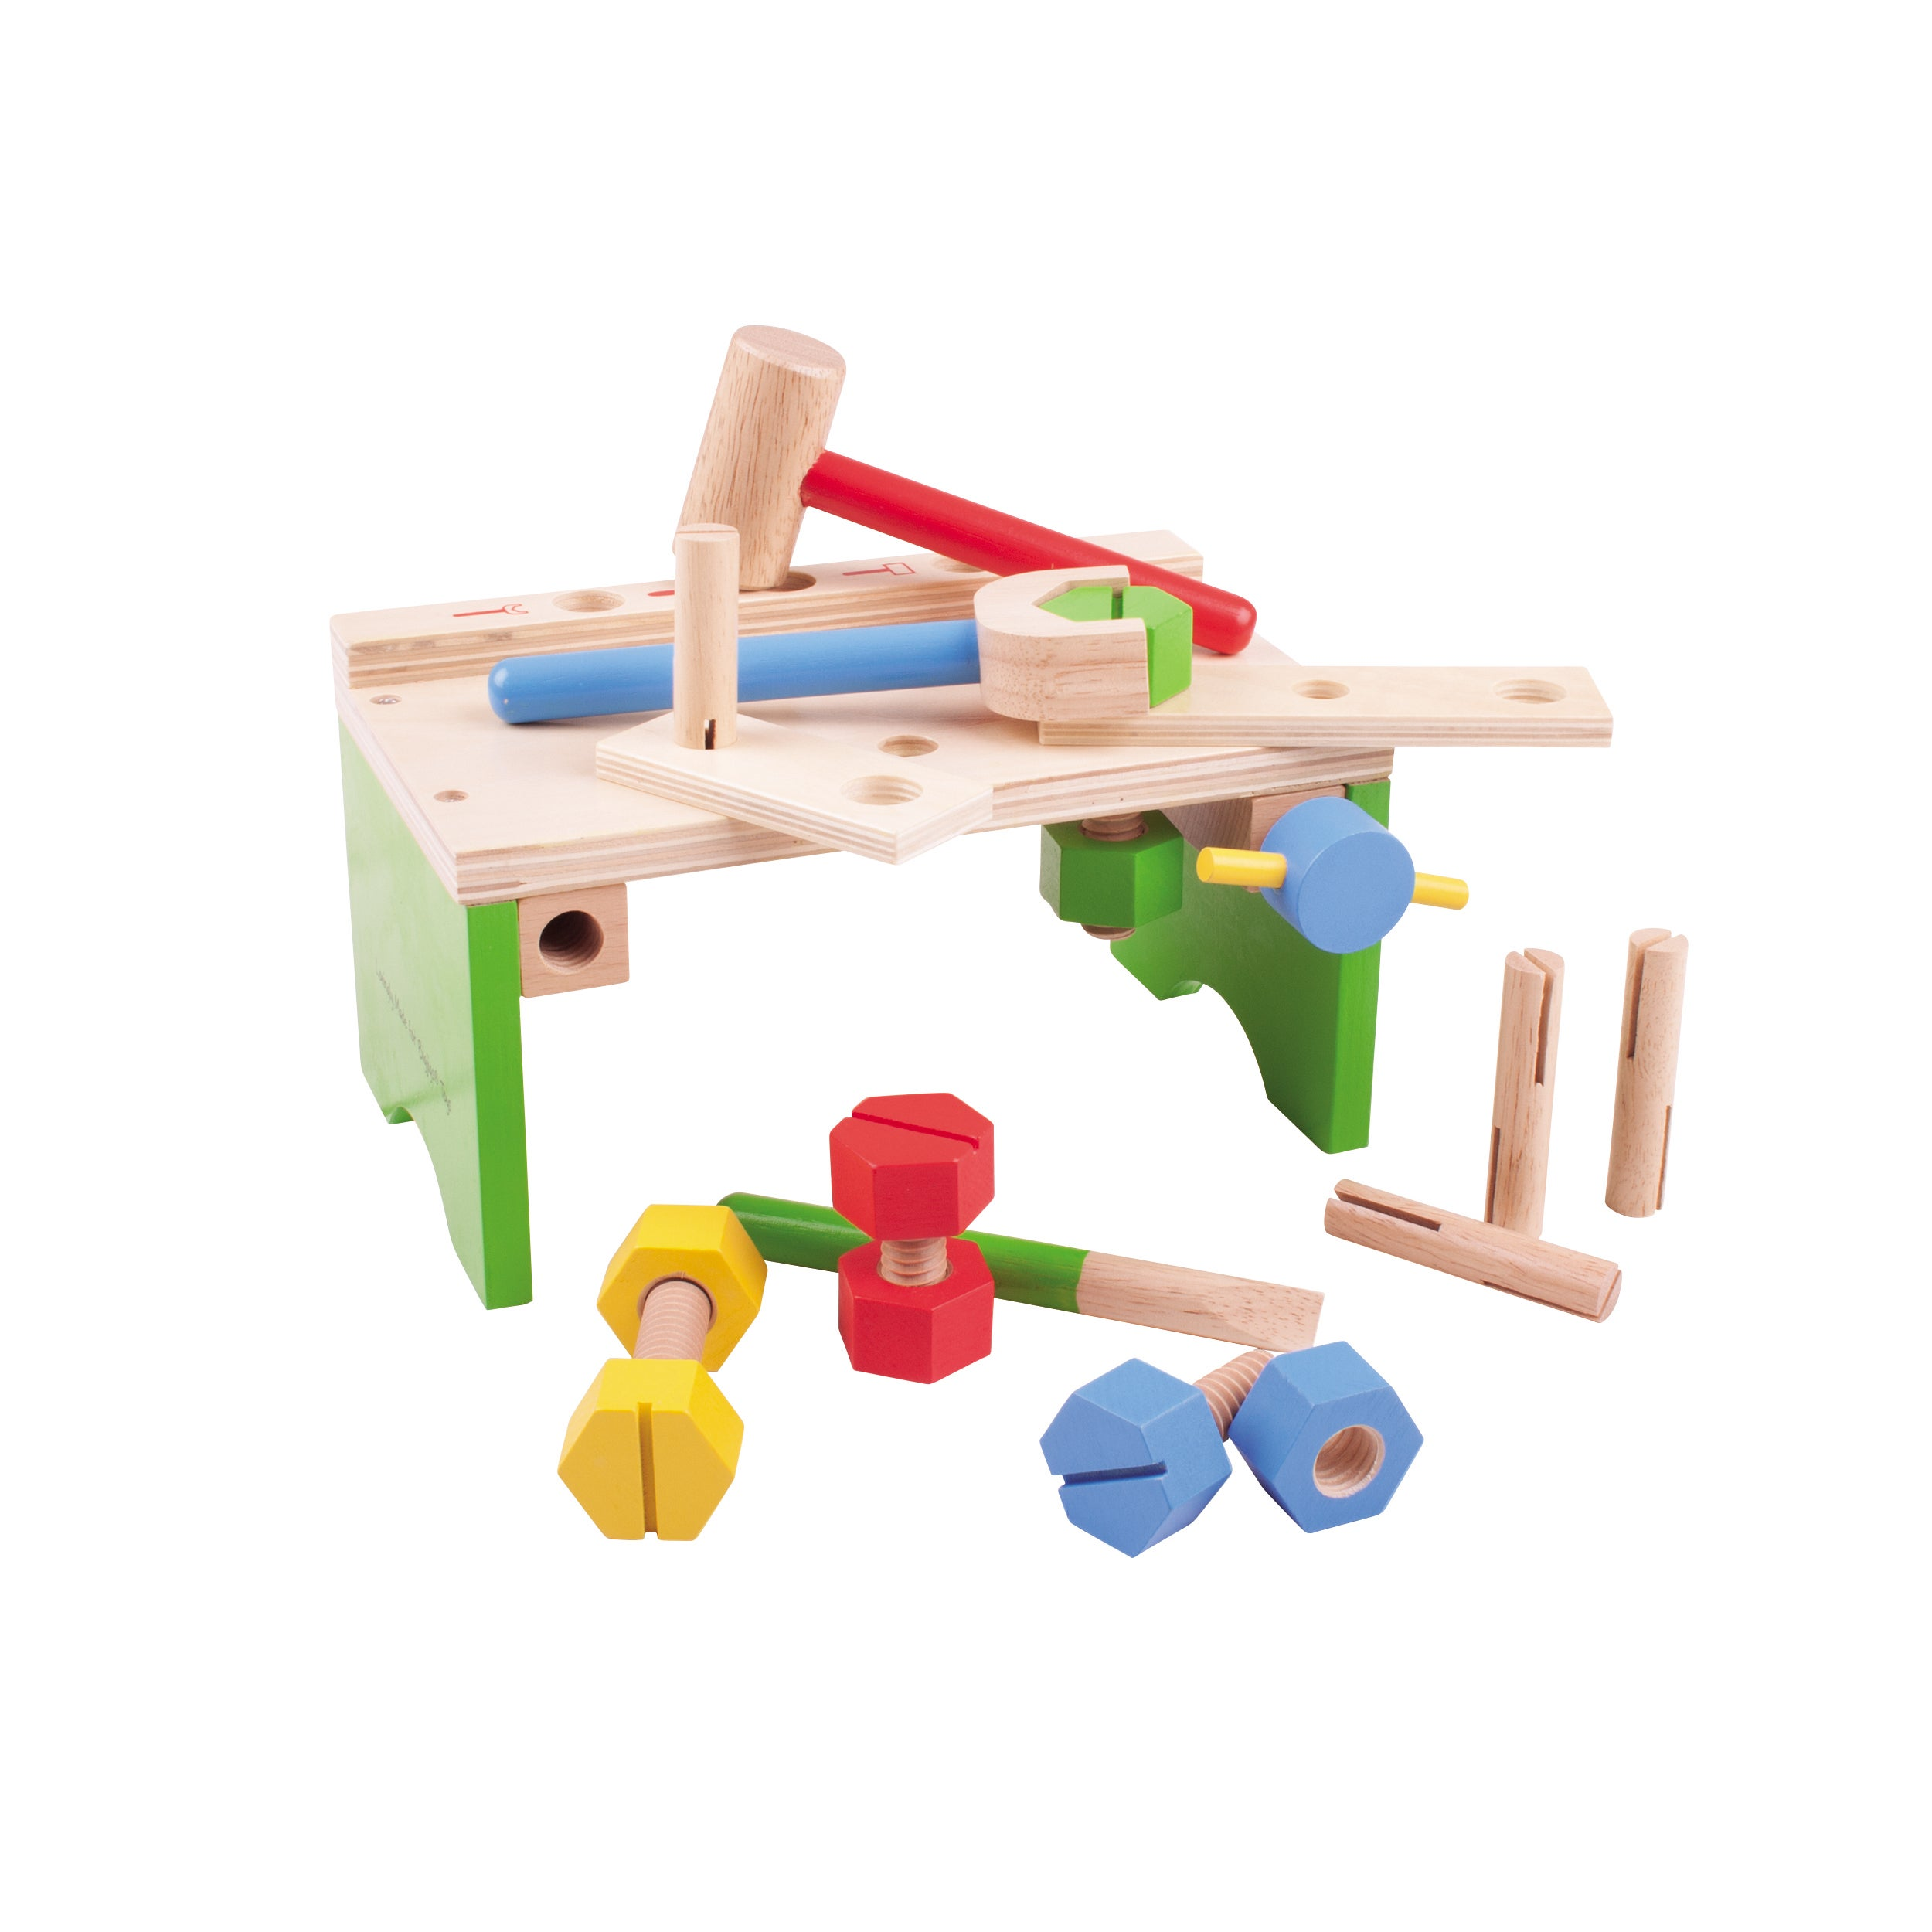 Toy wooden tool bench | Compare Prices at Nextag